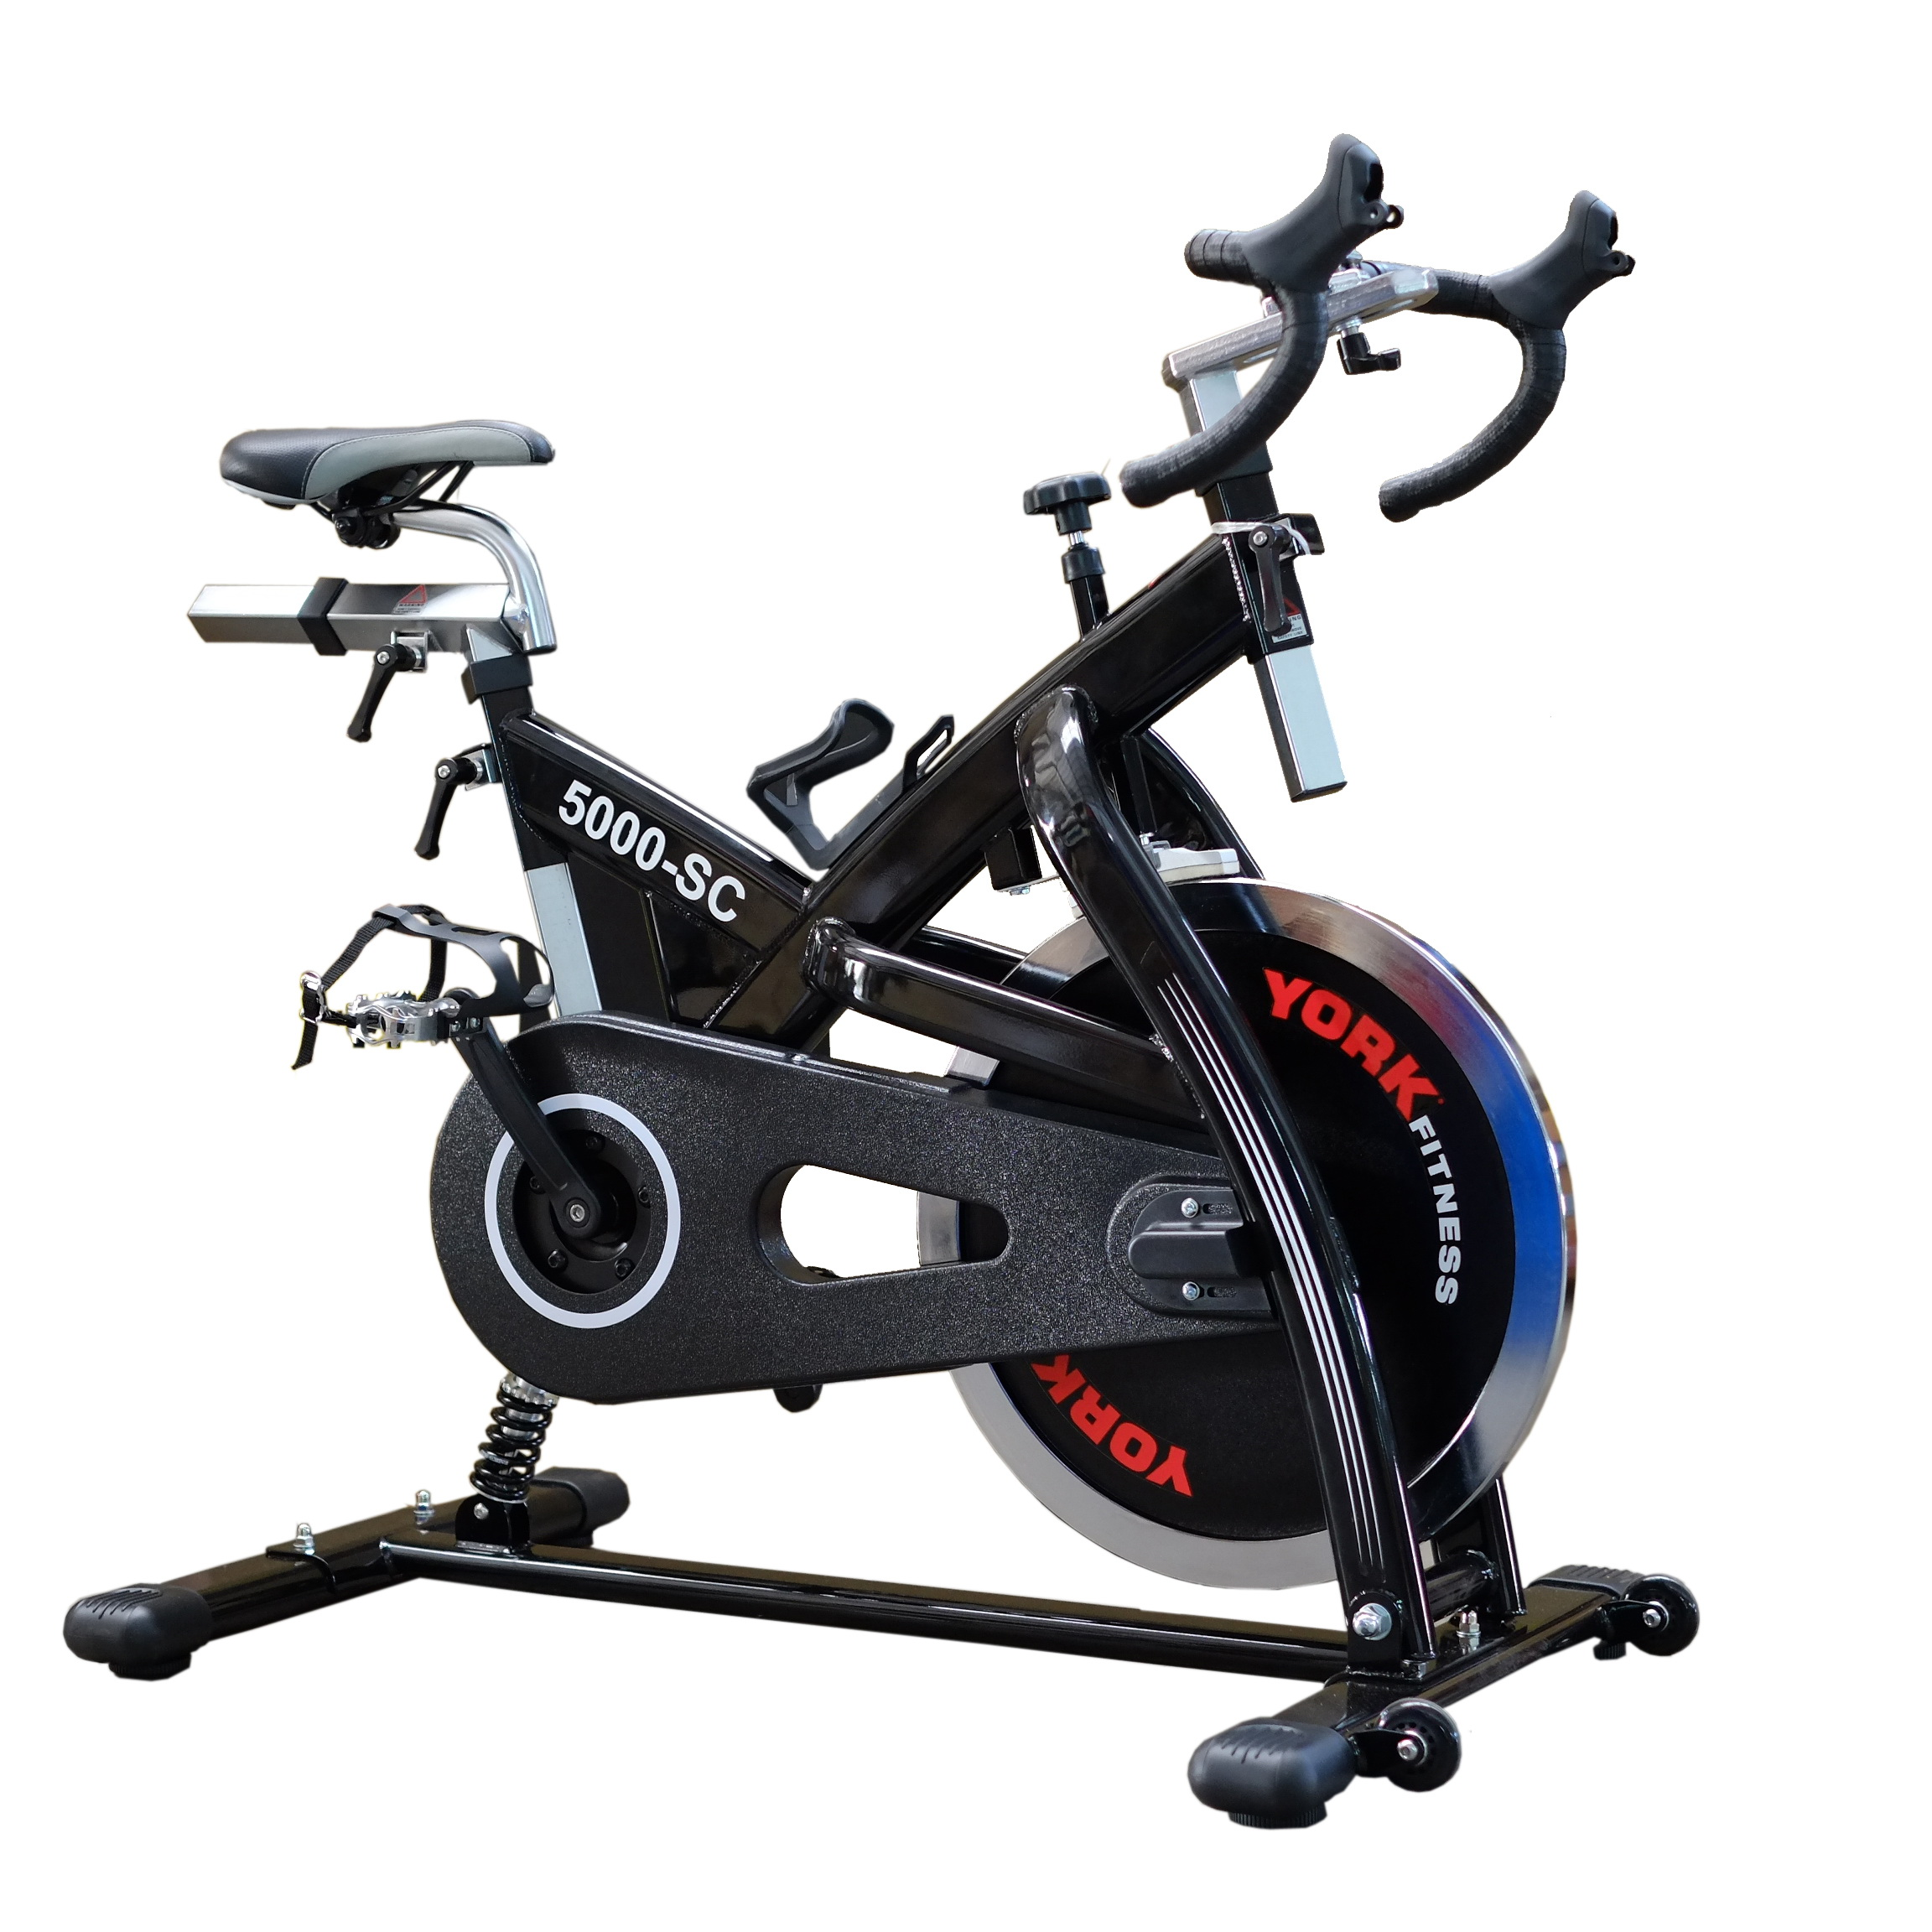 York Fitness 5000-SC Spin Bike